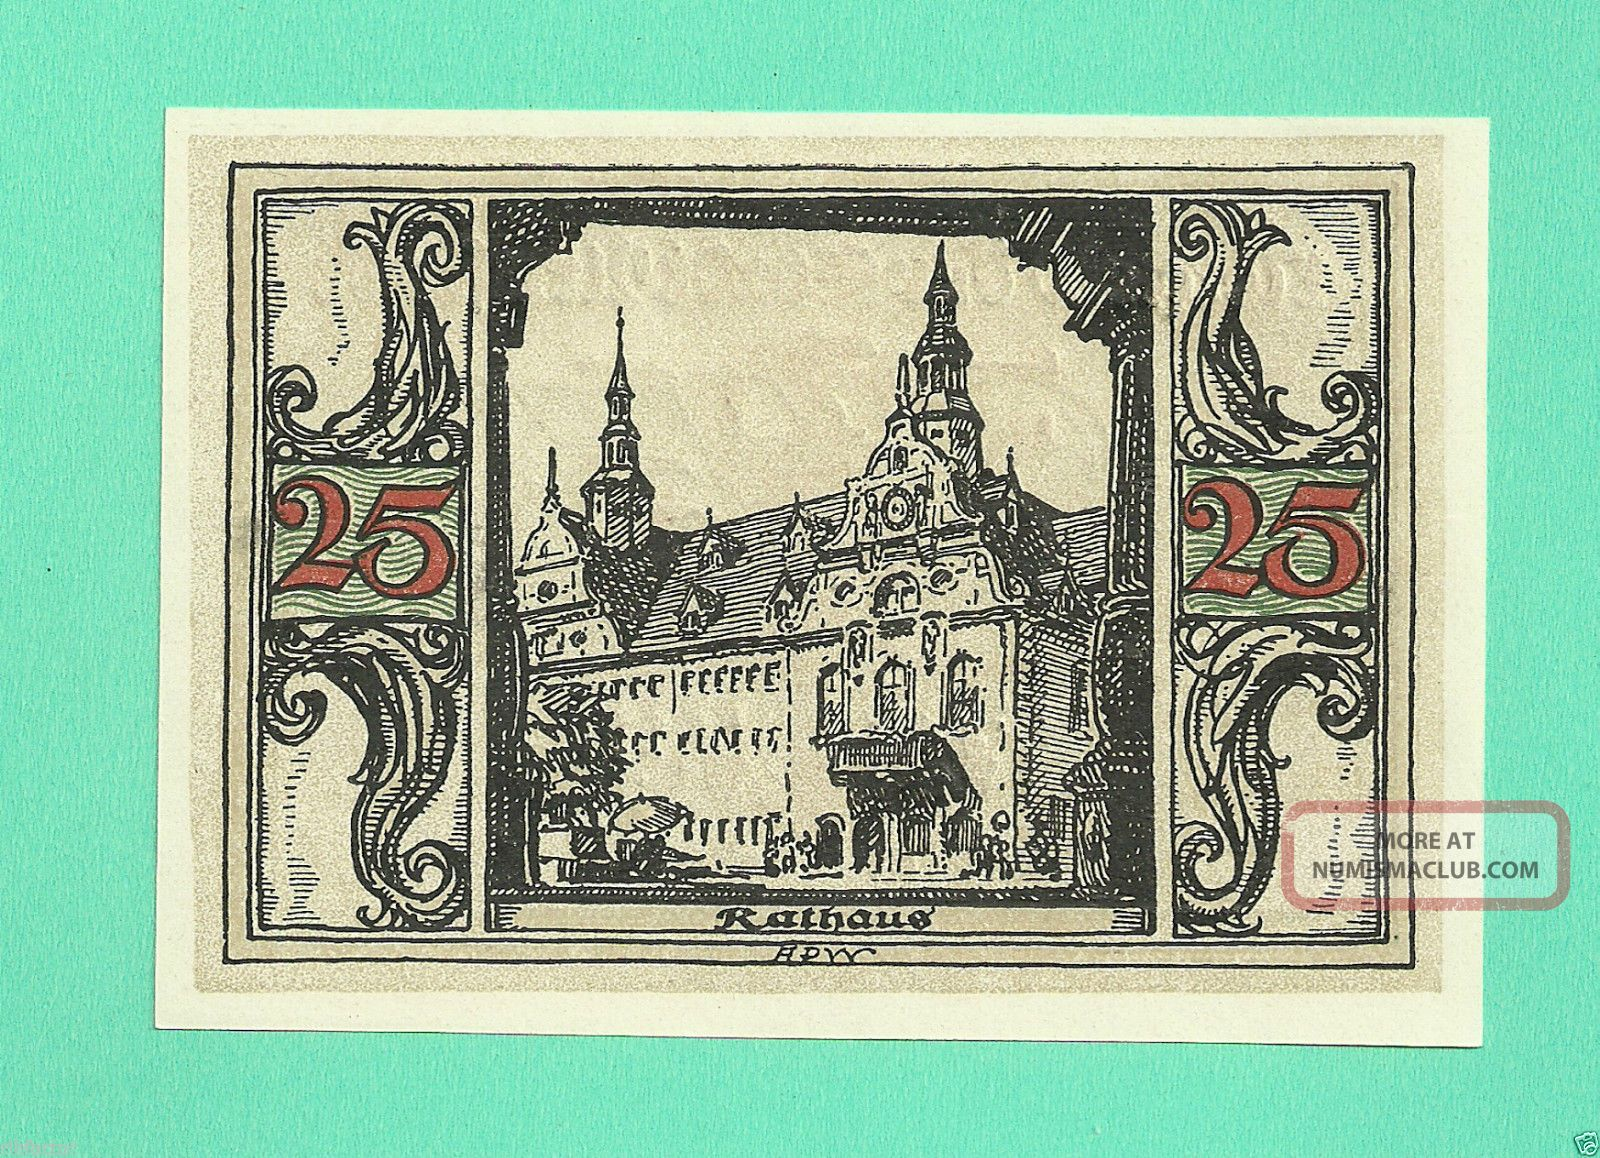 Germany Arnstadt 50 Pfg.  1921 Unc Gem Notgeld St Wqer8 Europe photo